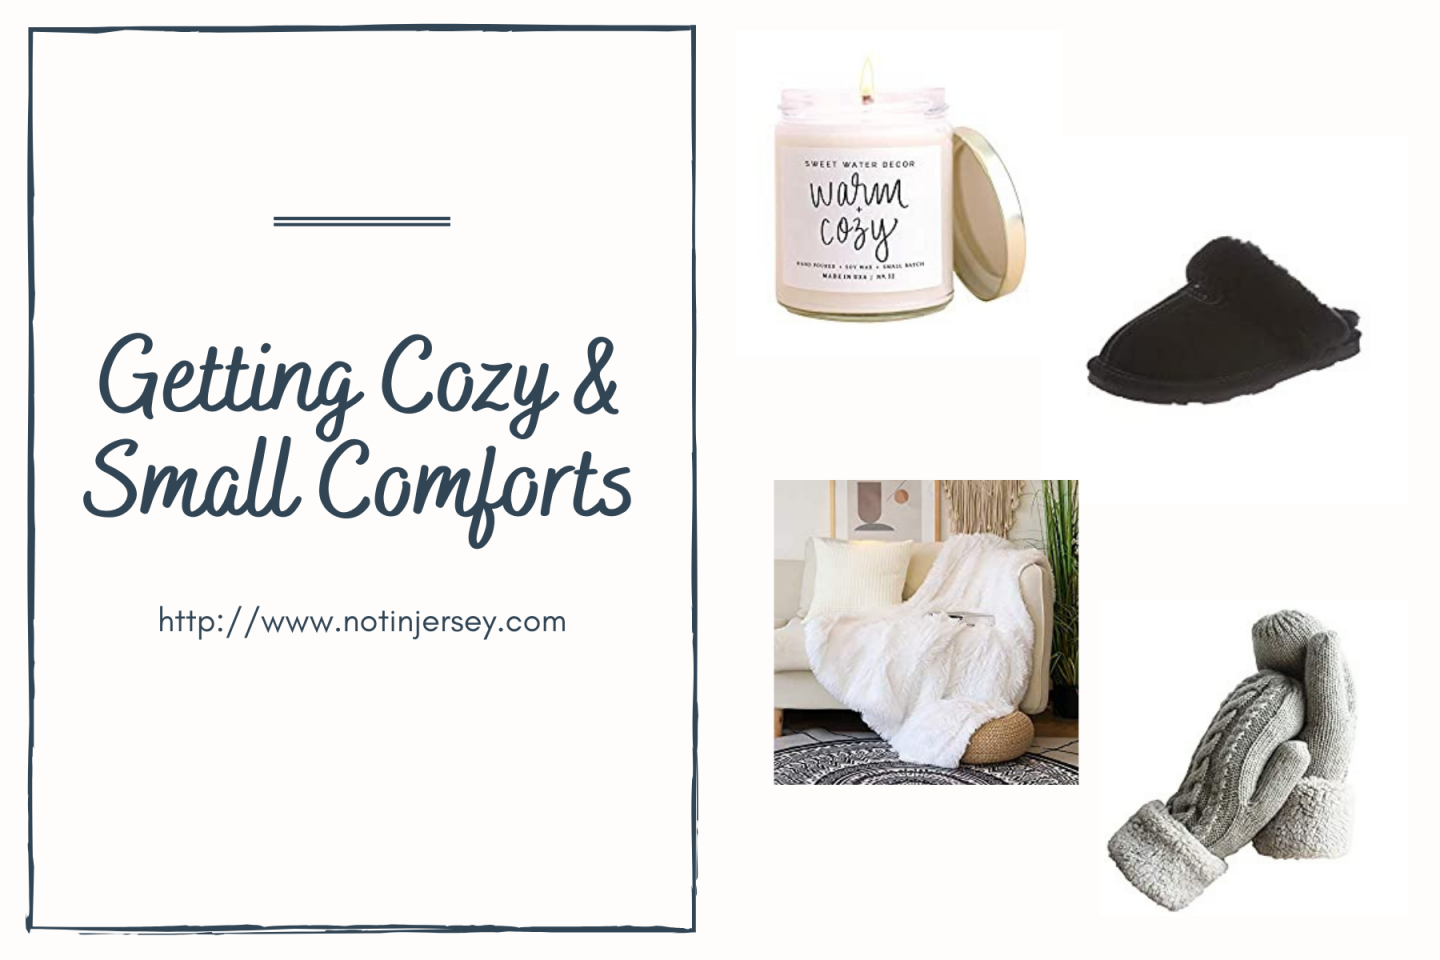 Let's Get Cozy - Small Comforts